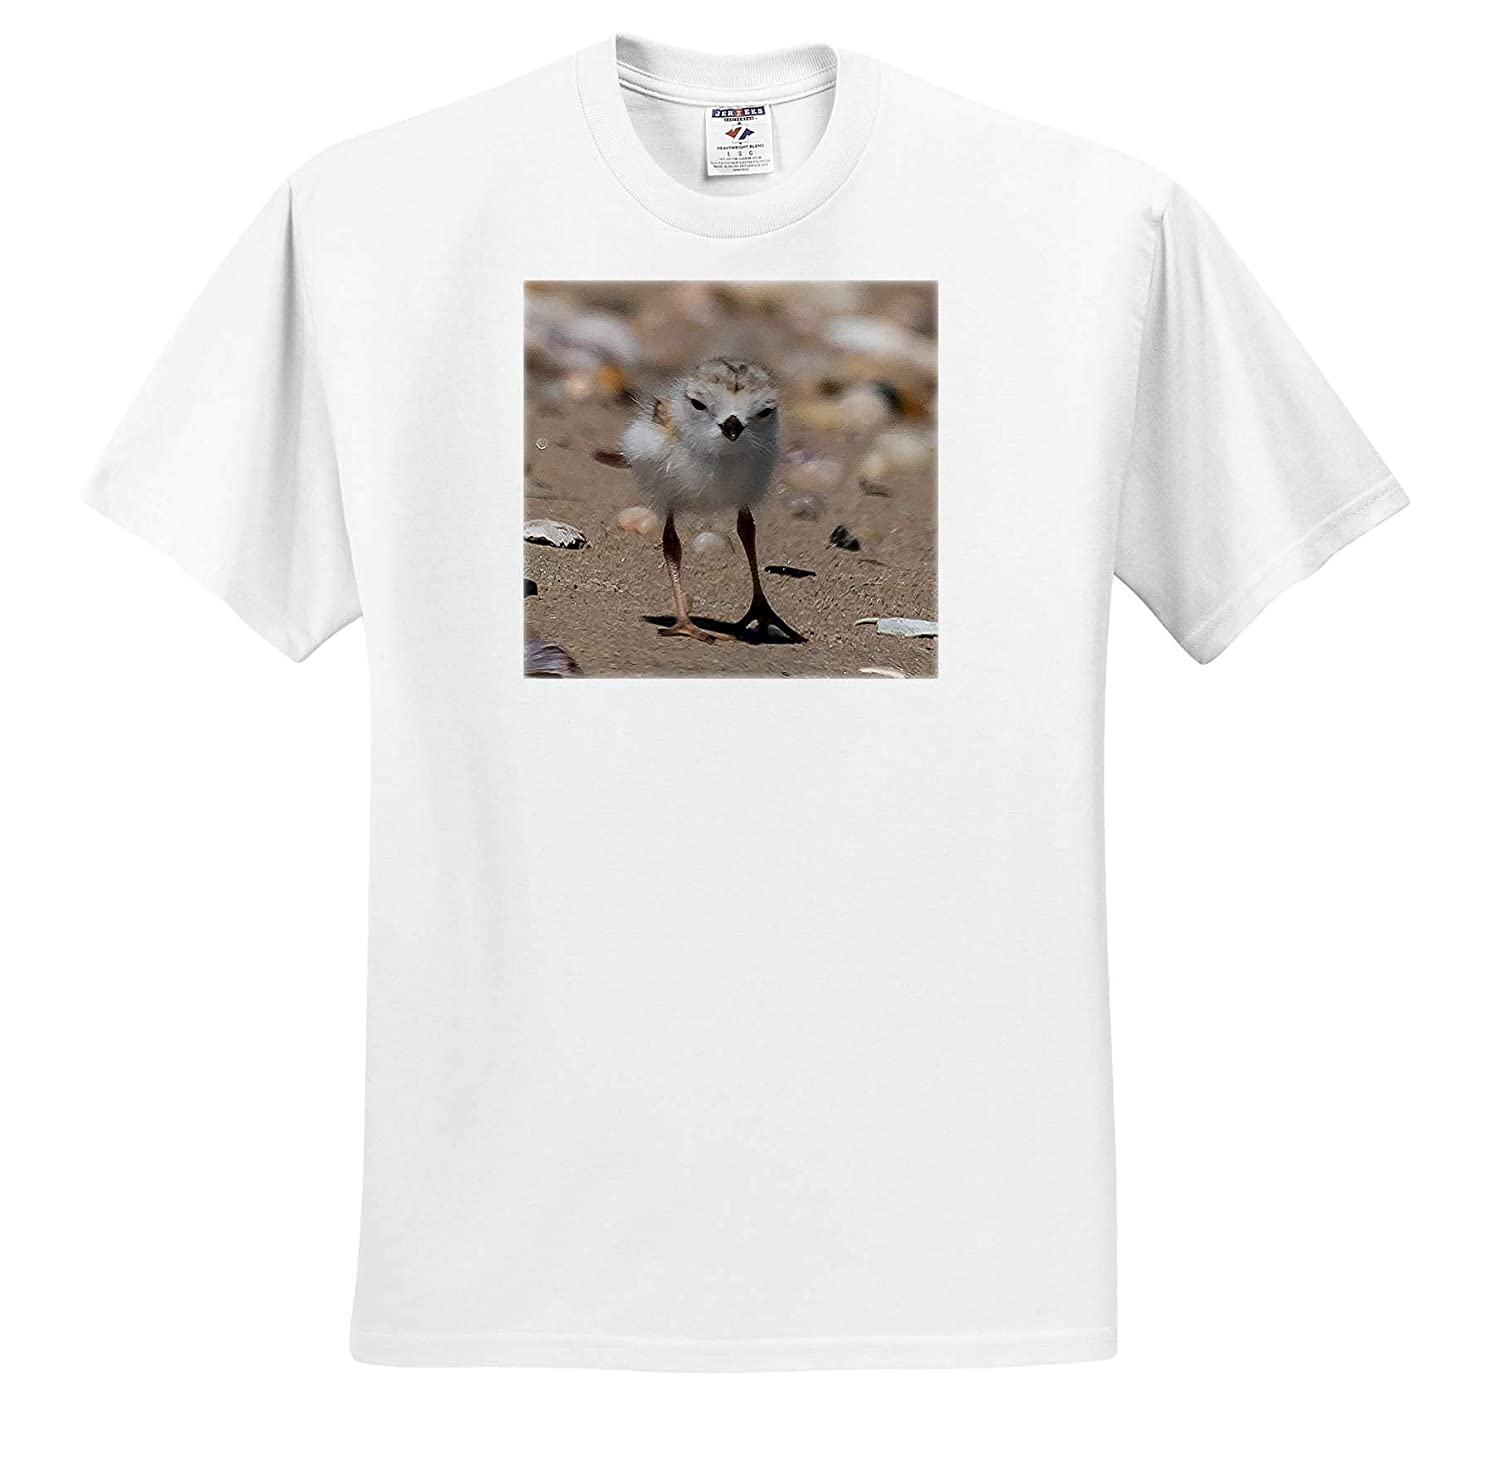 3dRose Roni Chastain Photography T-Shirts Piping Plover Chick